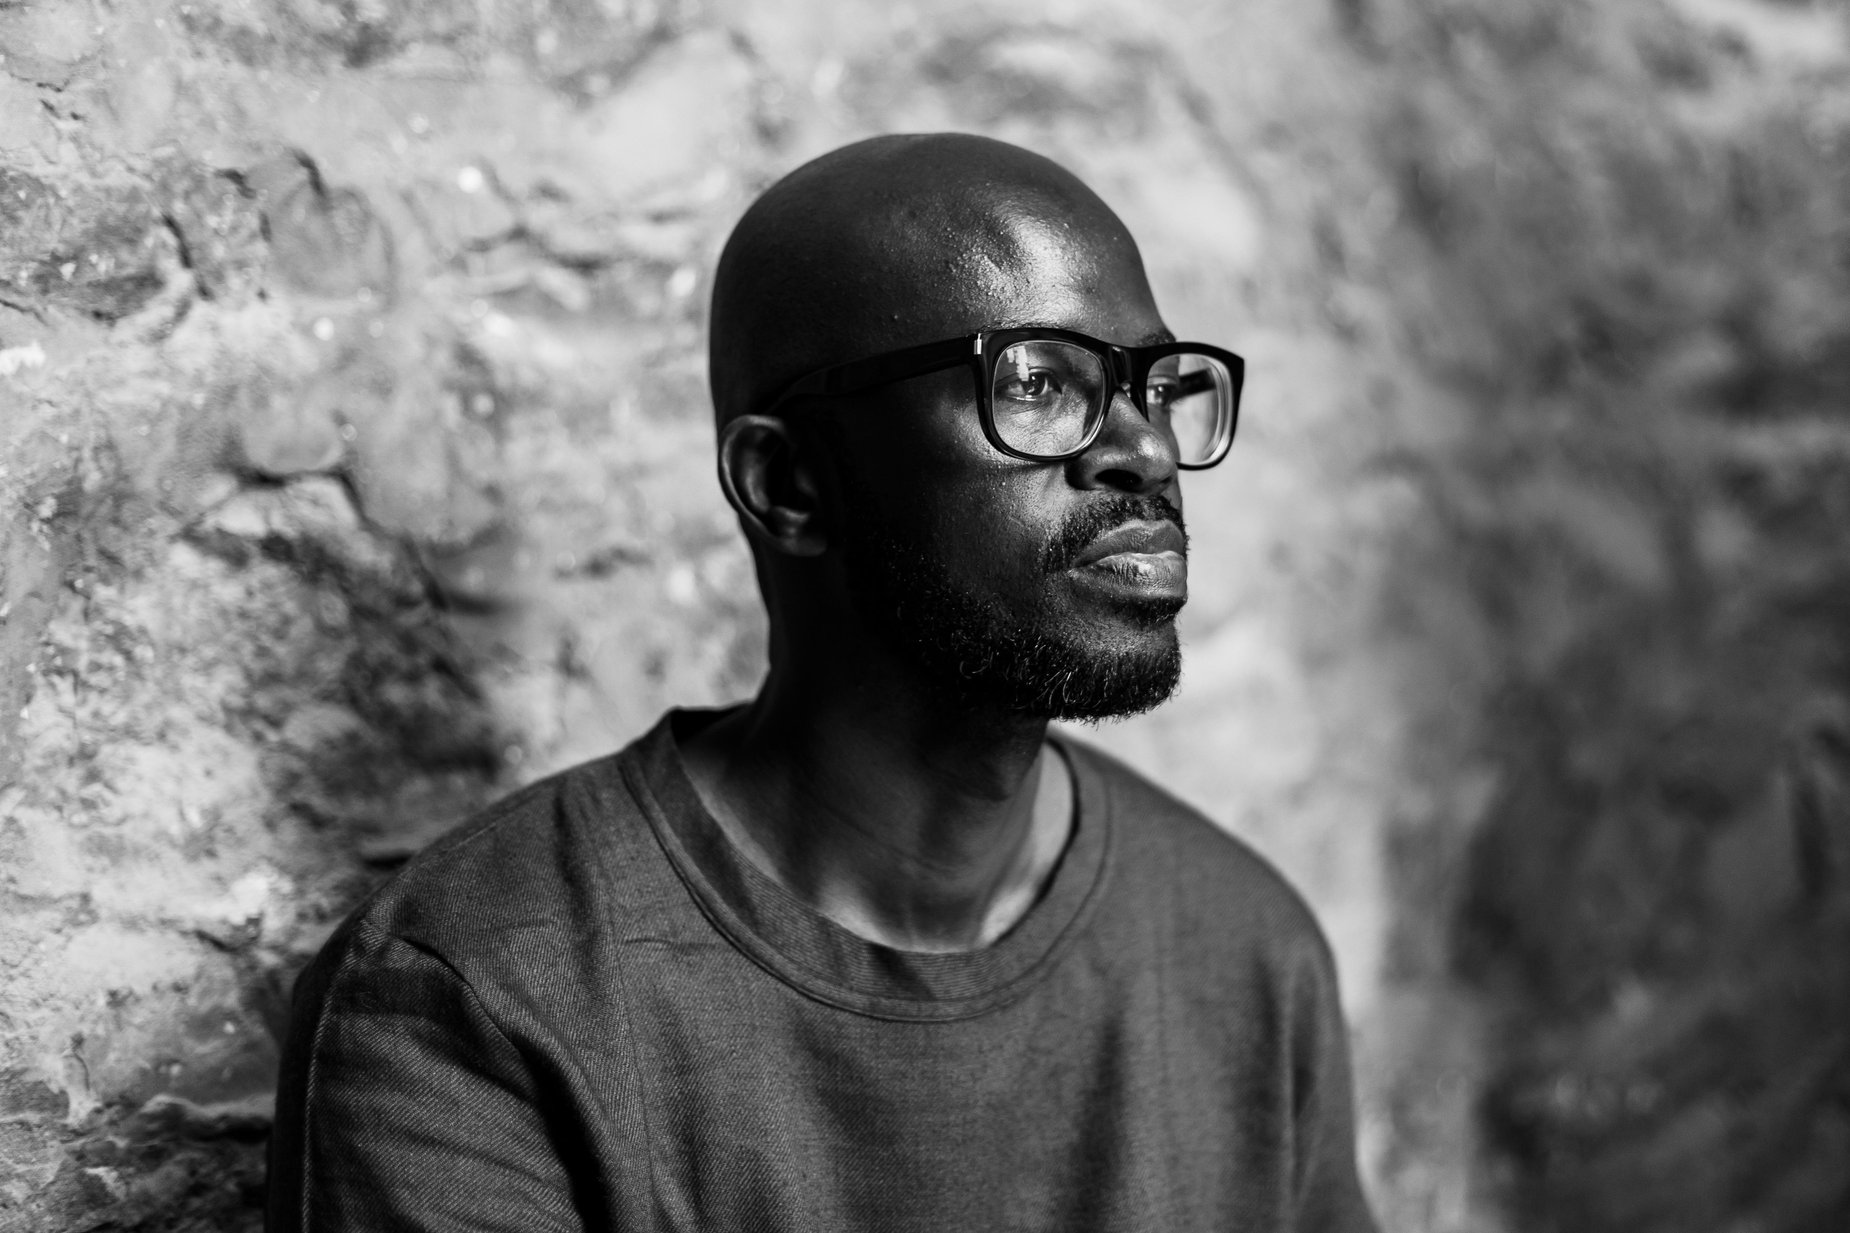 Gongbox from Black Coffee is realer than ever before